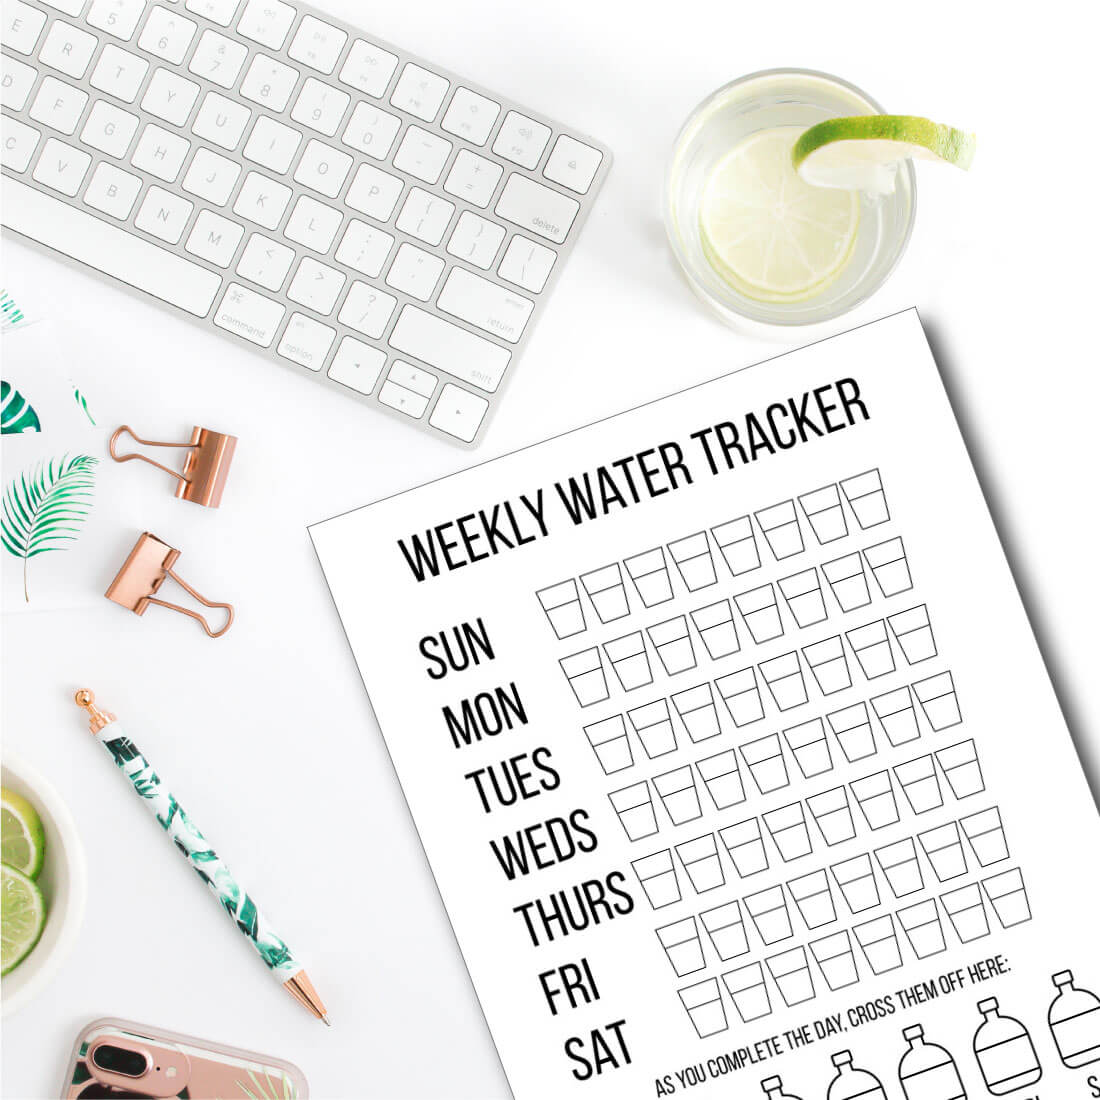 How Much Water Should You Drink in a Day? Tips for ways to drink more water. Printable Weekly Water Tracker from www.thirtyhandmadedays.com